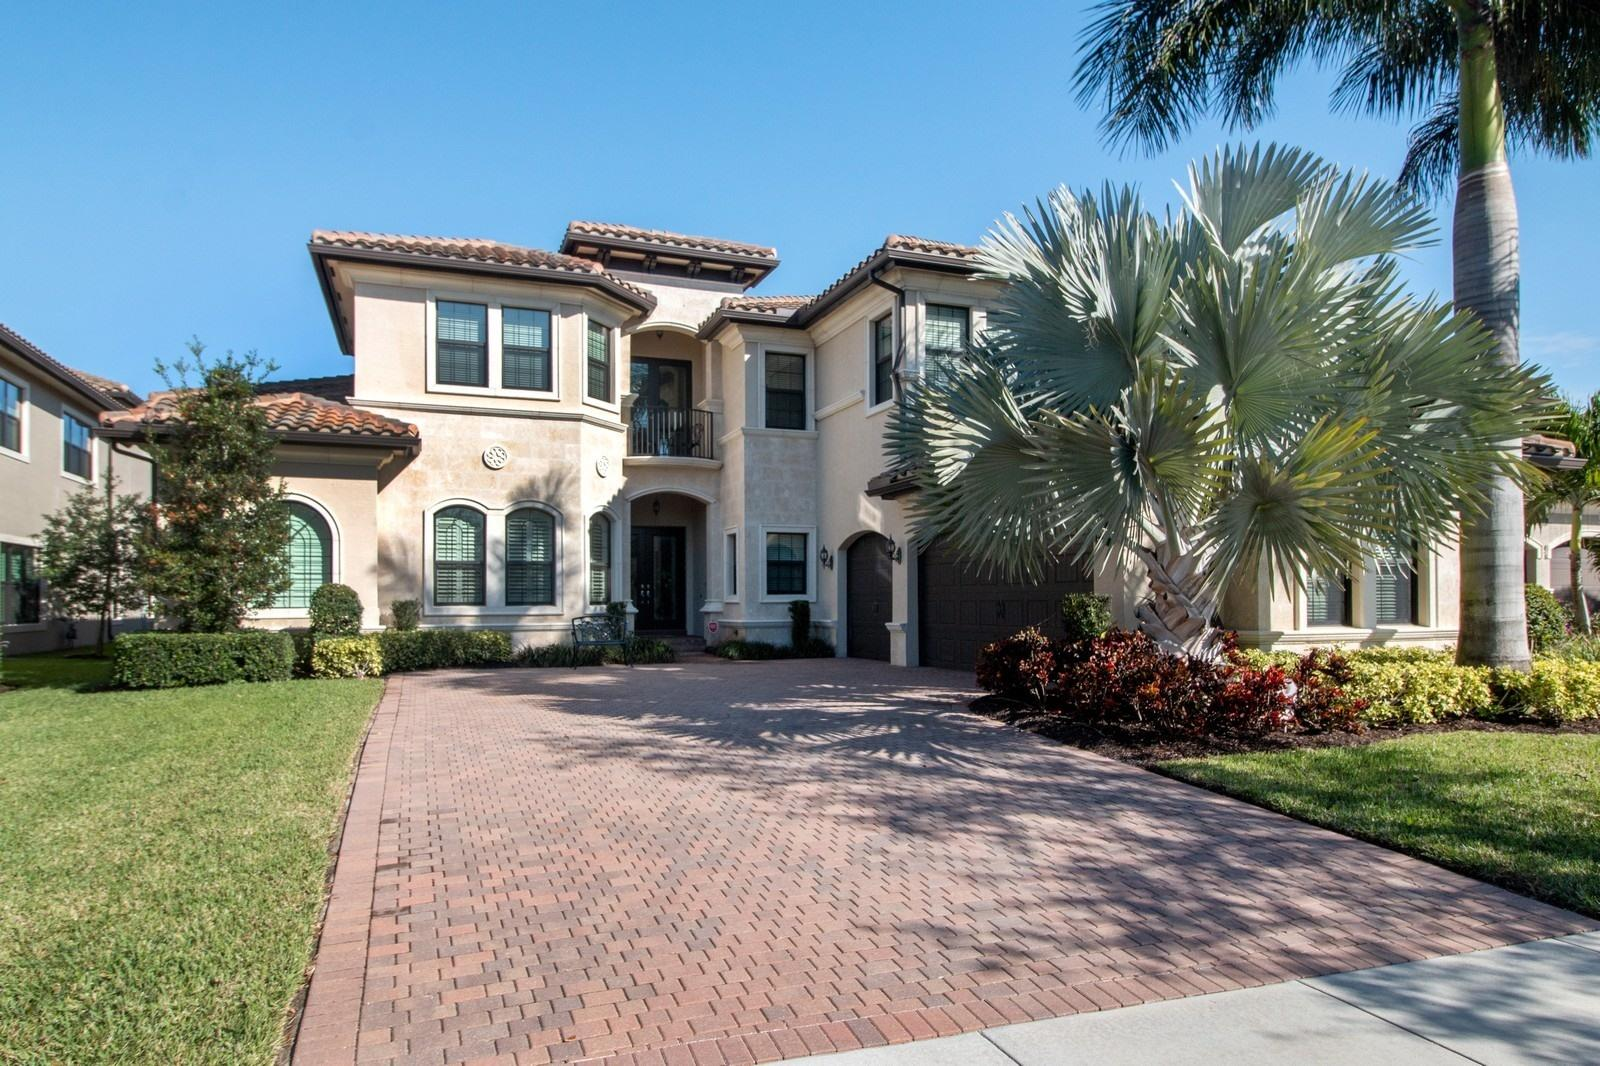 8469 Hawks Gully Avenue, Delray Beach, Florida 33446, 5 Bedrooms Bedrooms, ,5.2 BathroomsBathrooms,Single Family,For Sale,The Bridges,Hawks Gully,RX-10493464